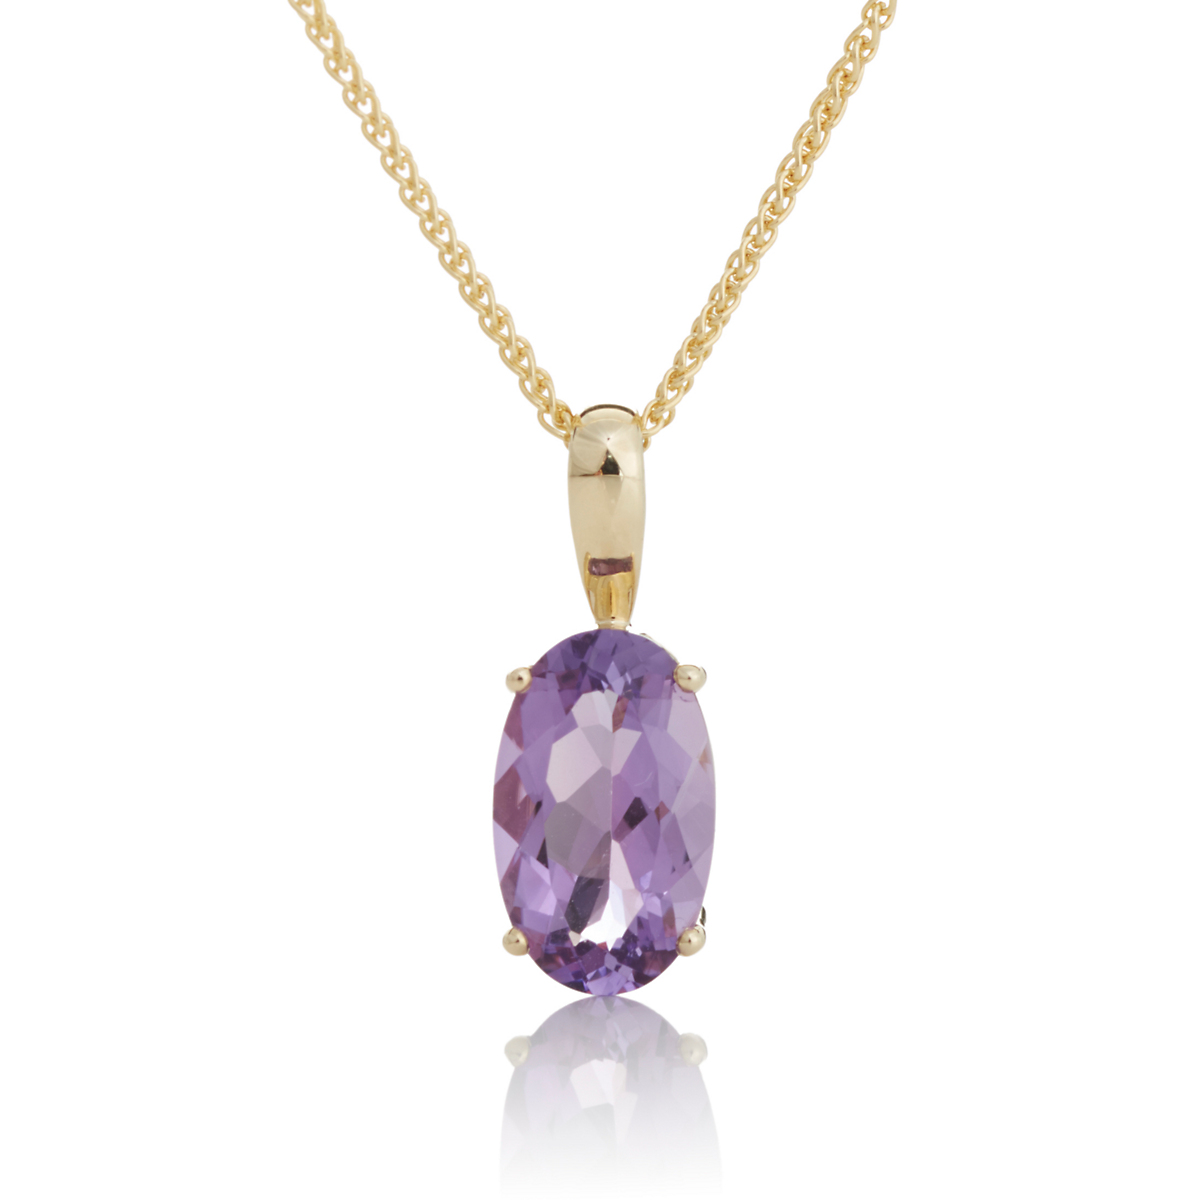 Gump's Faceted Amethyst Necklace